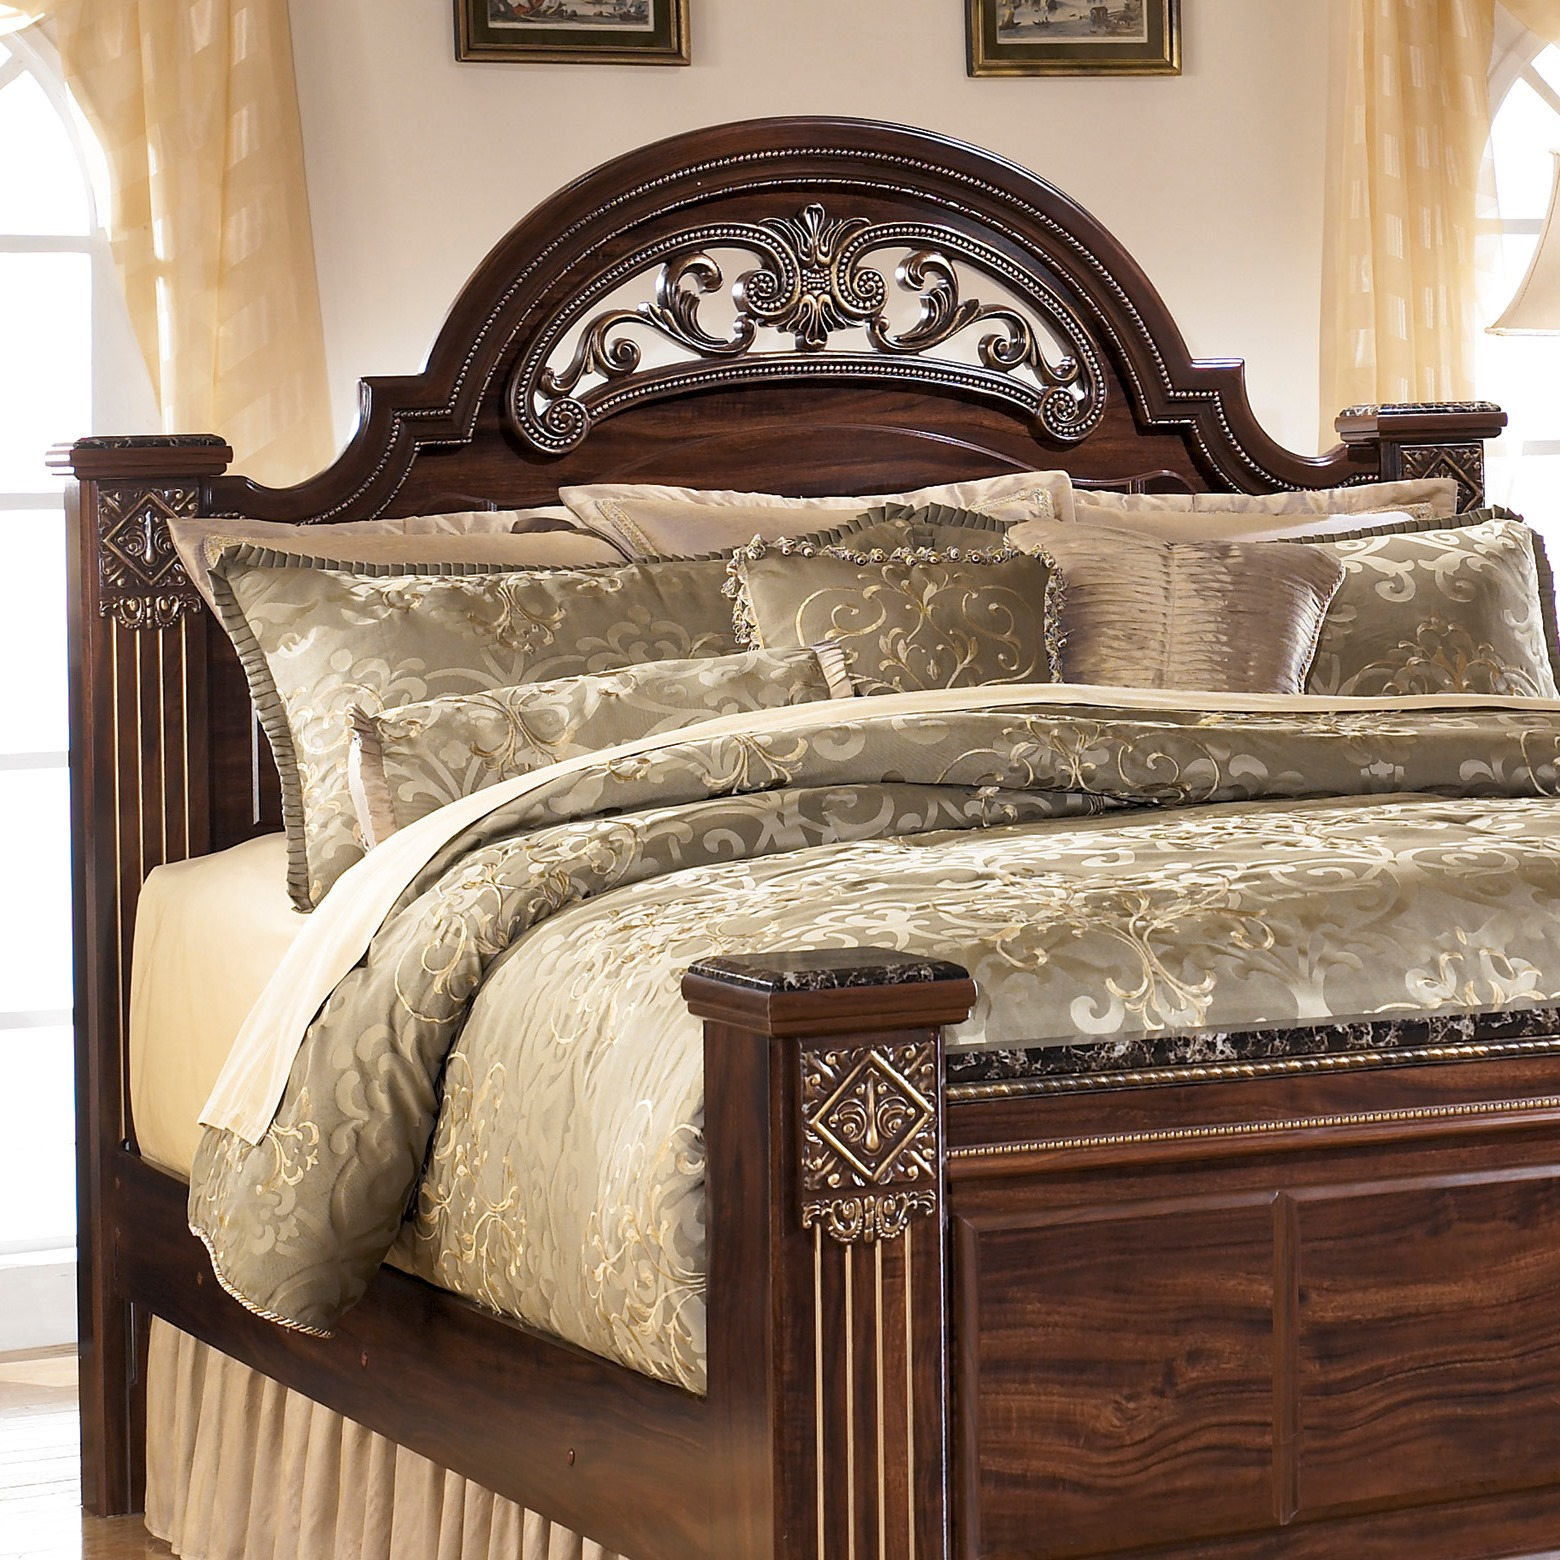 King size headboard to enhance your bedroom decor